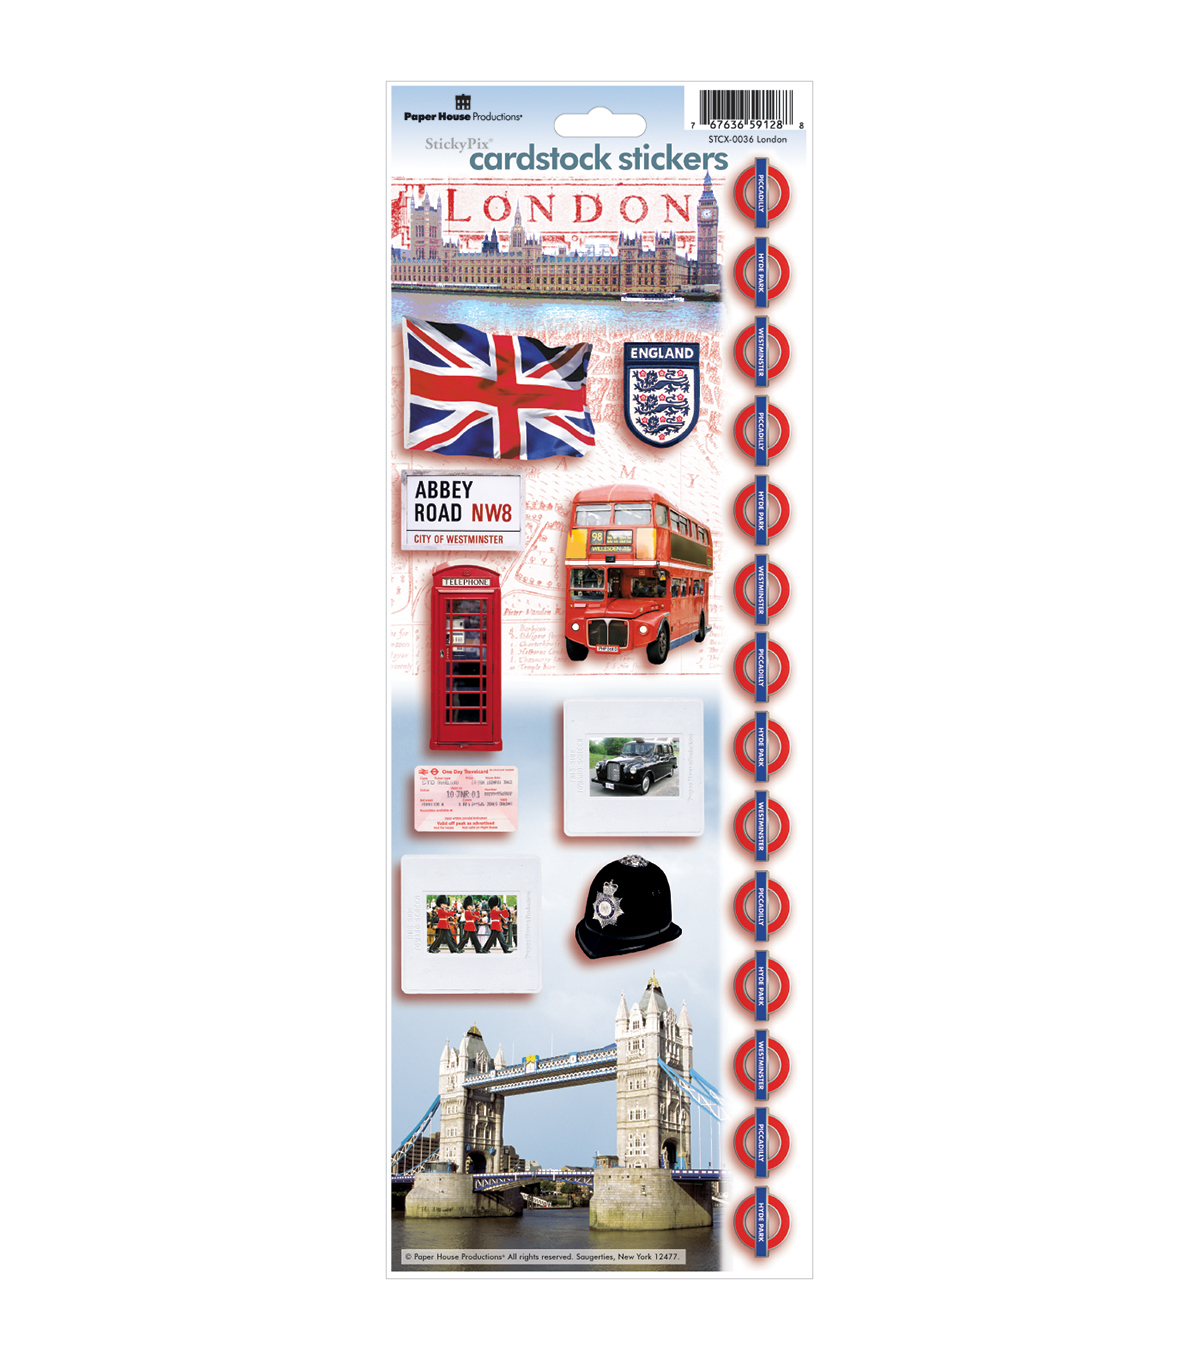 London -cardstock Stickers